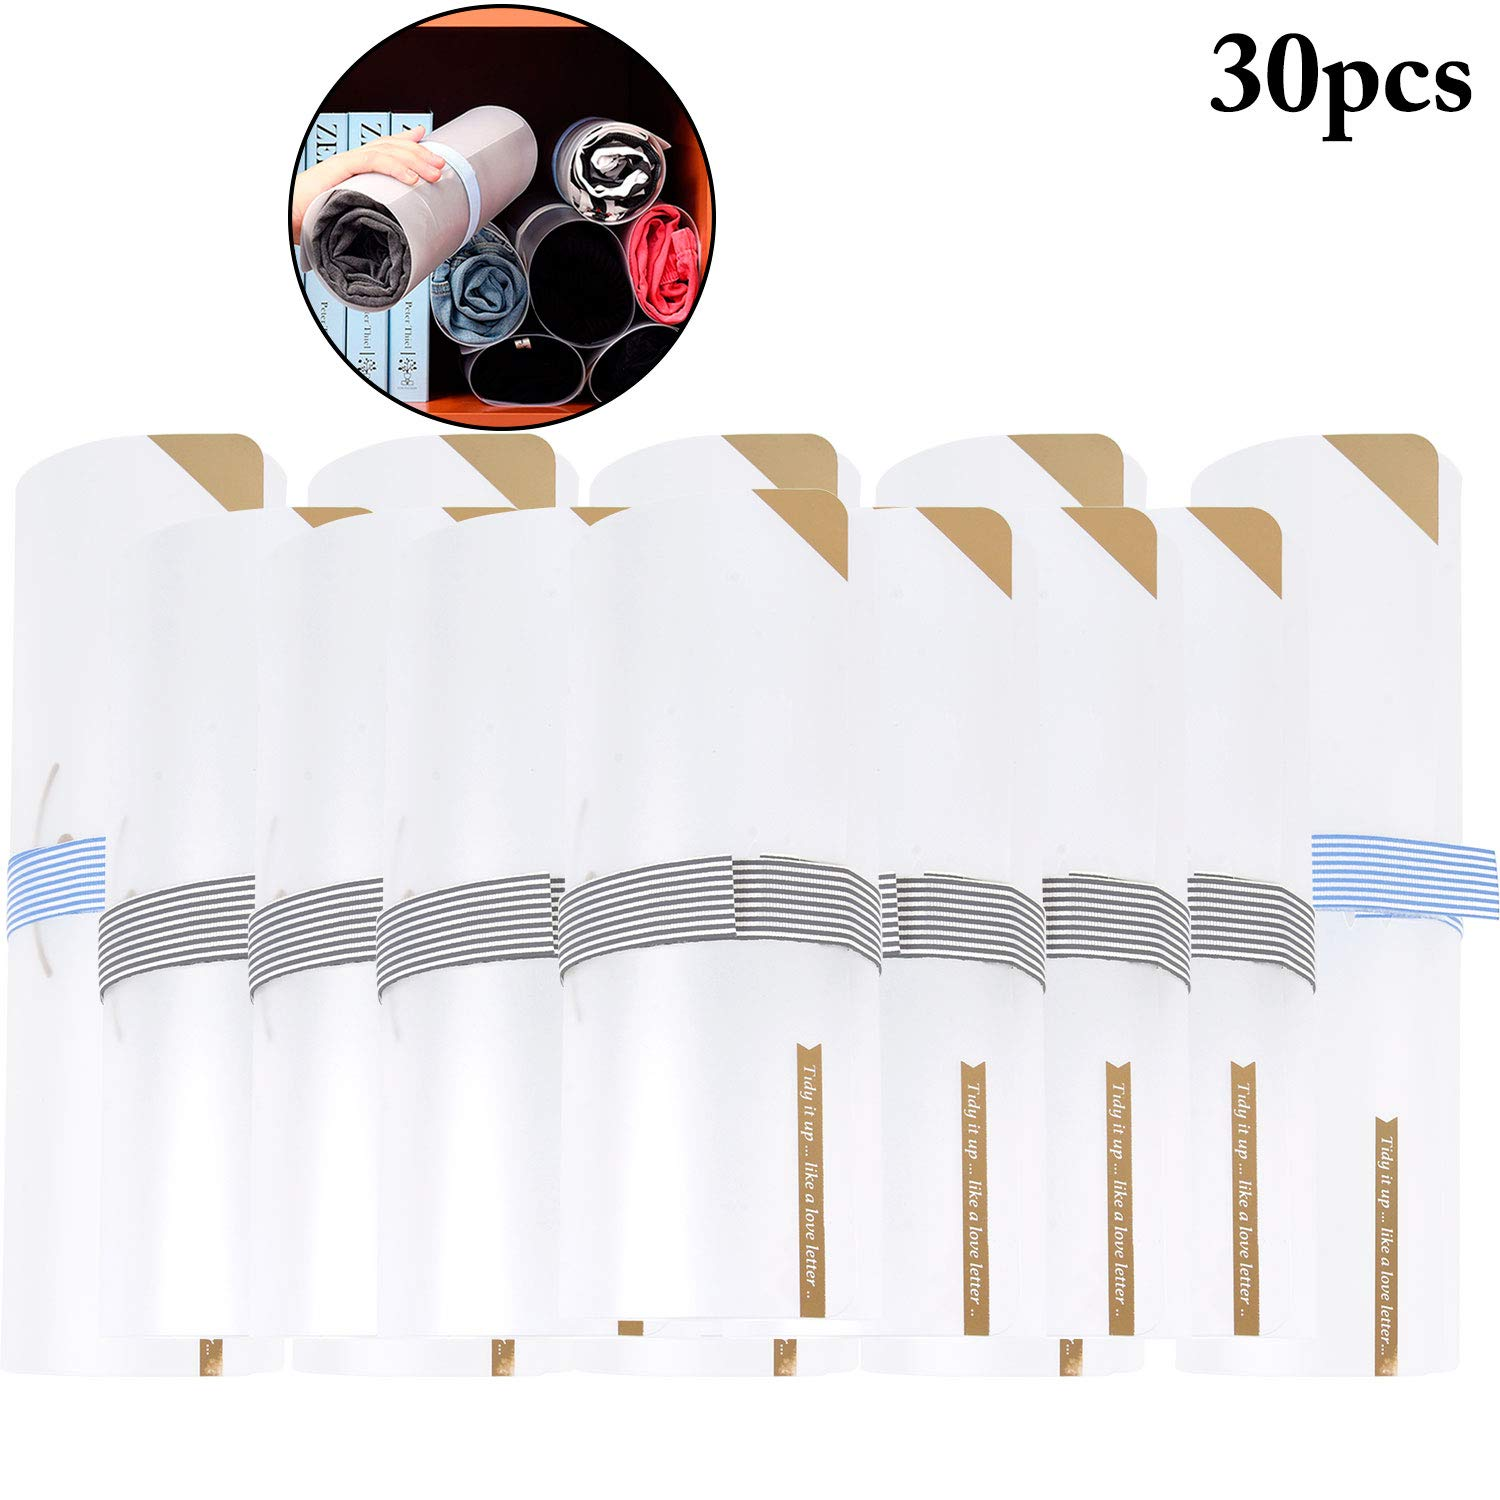 JUSTDOLIFE Clothes Folder, 30Pcs T Shirt Roller Folder Closet Foldable Storage Organizer Clothes Folding Board Save Space Suit for Any Home Adult and Kids Clothes by JUSTDOLIFE